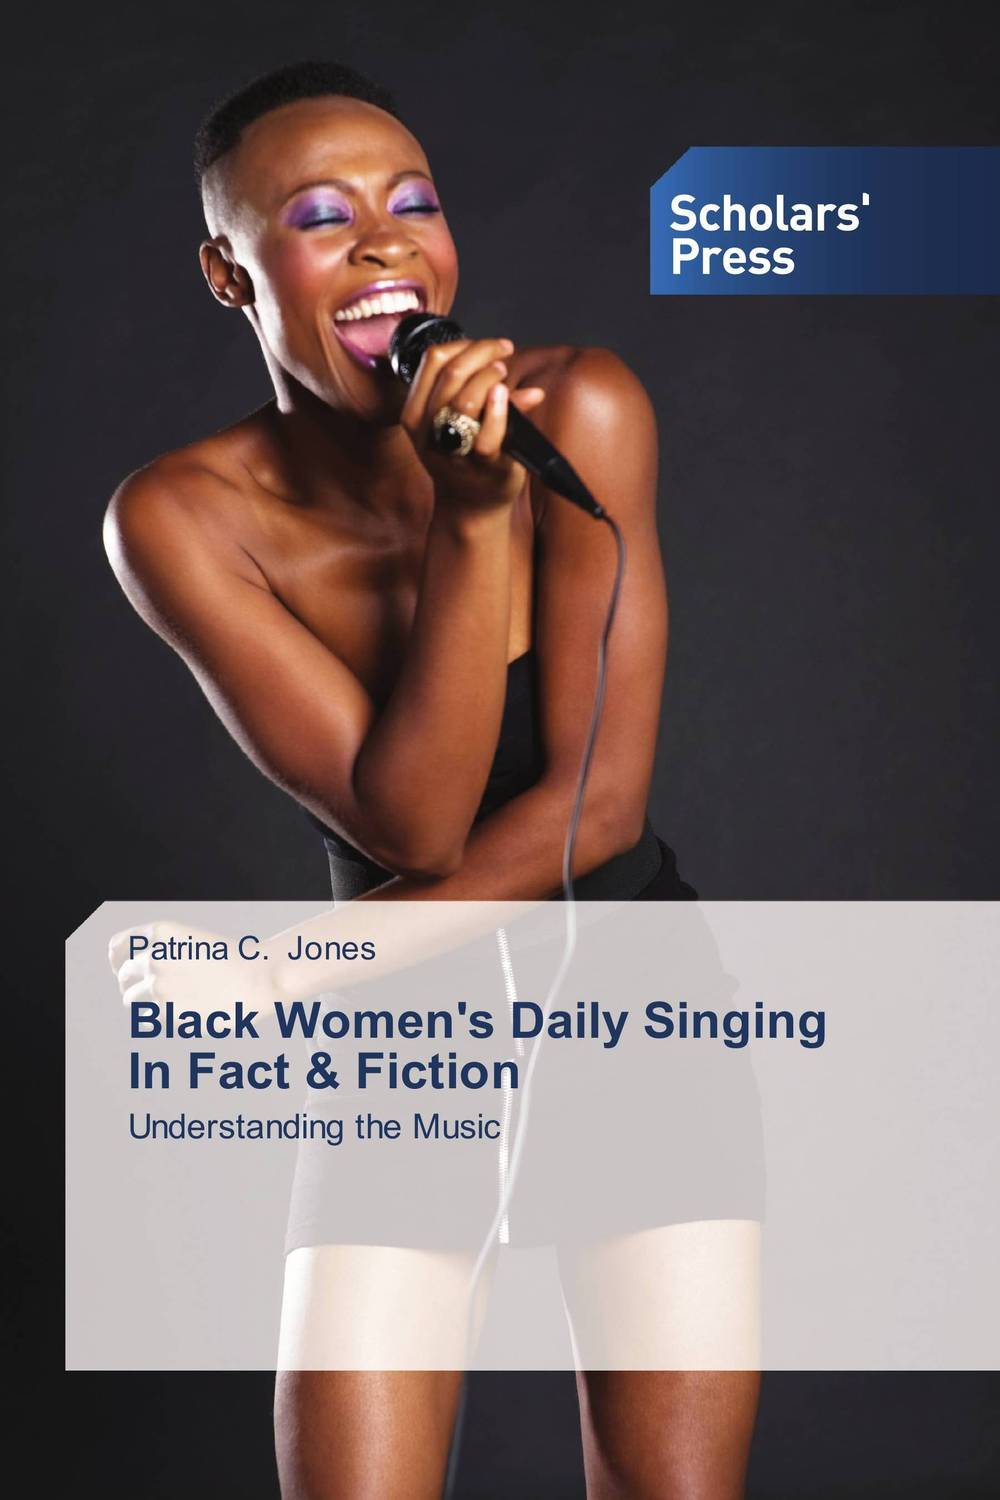 Black Women's Daily Singing In Fact & Fiction